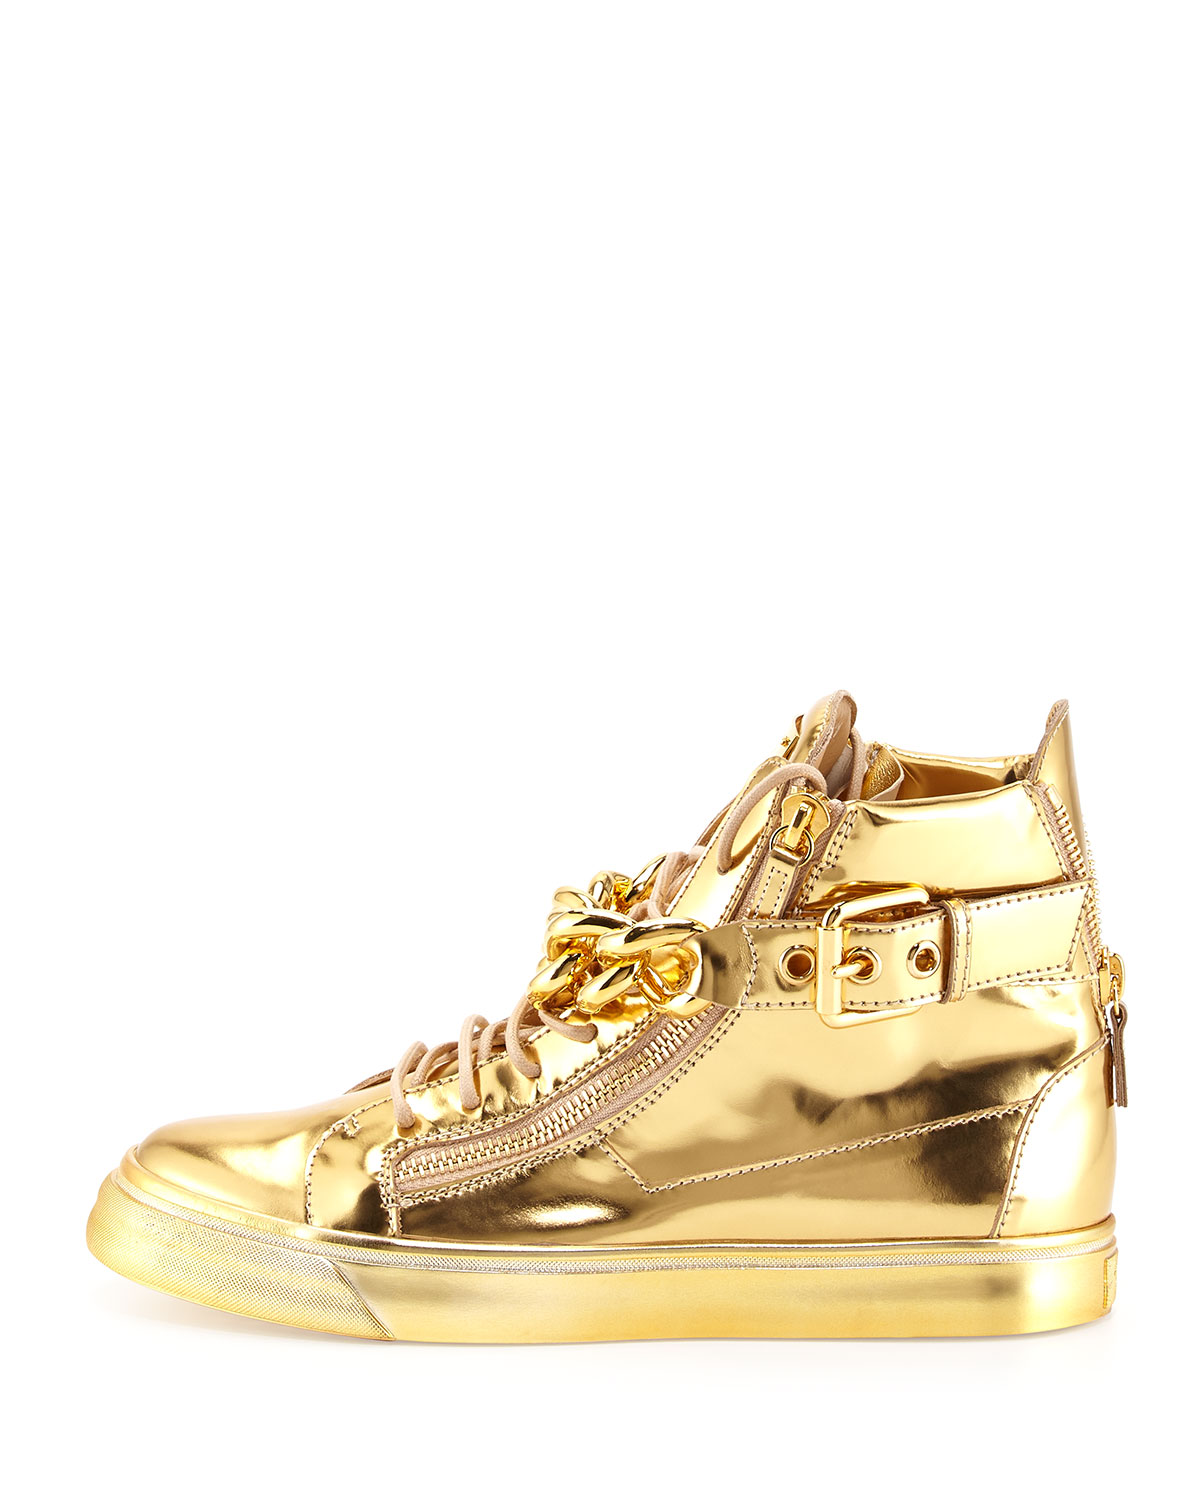 For the Price These Shoes Better be Made of Solid Gold ...